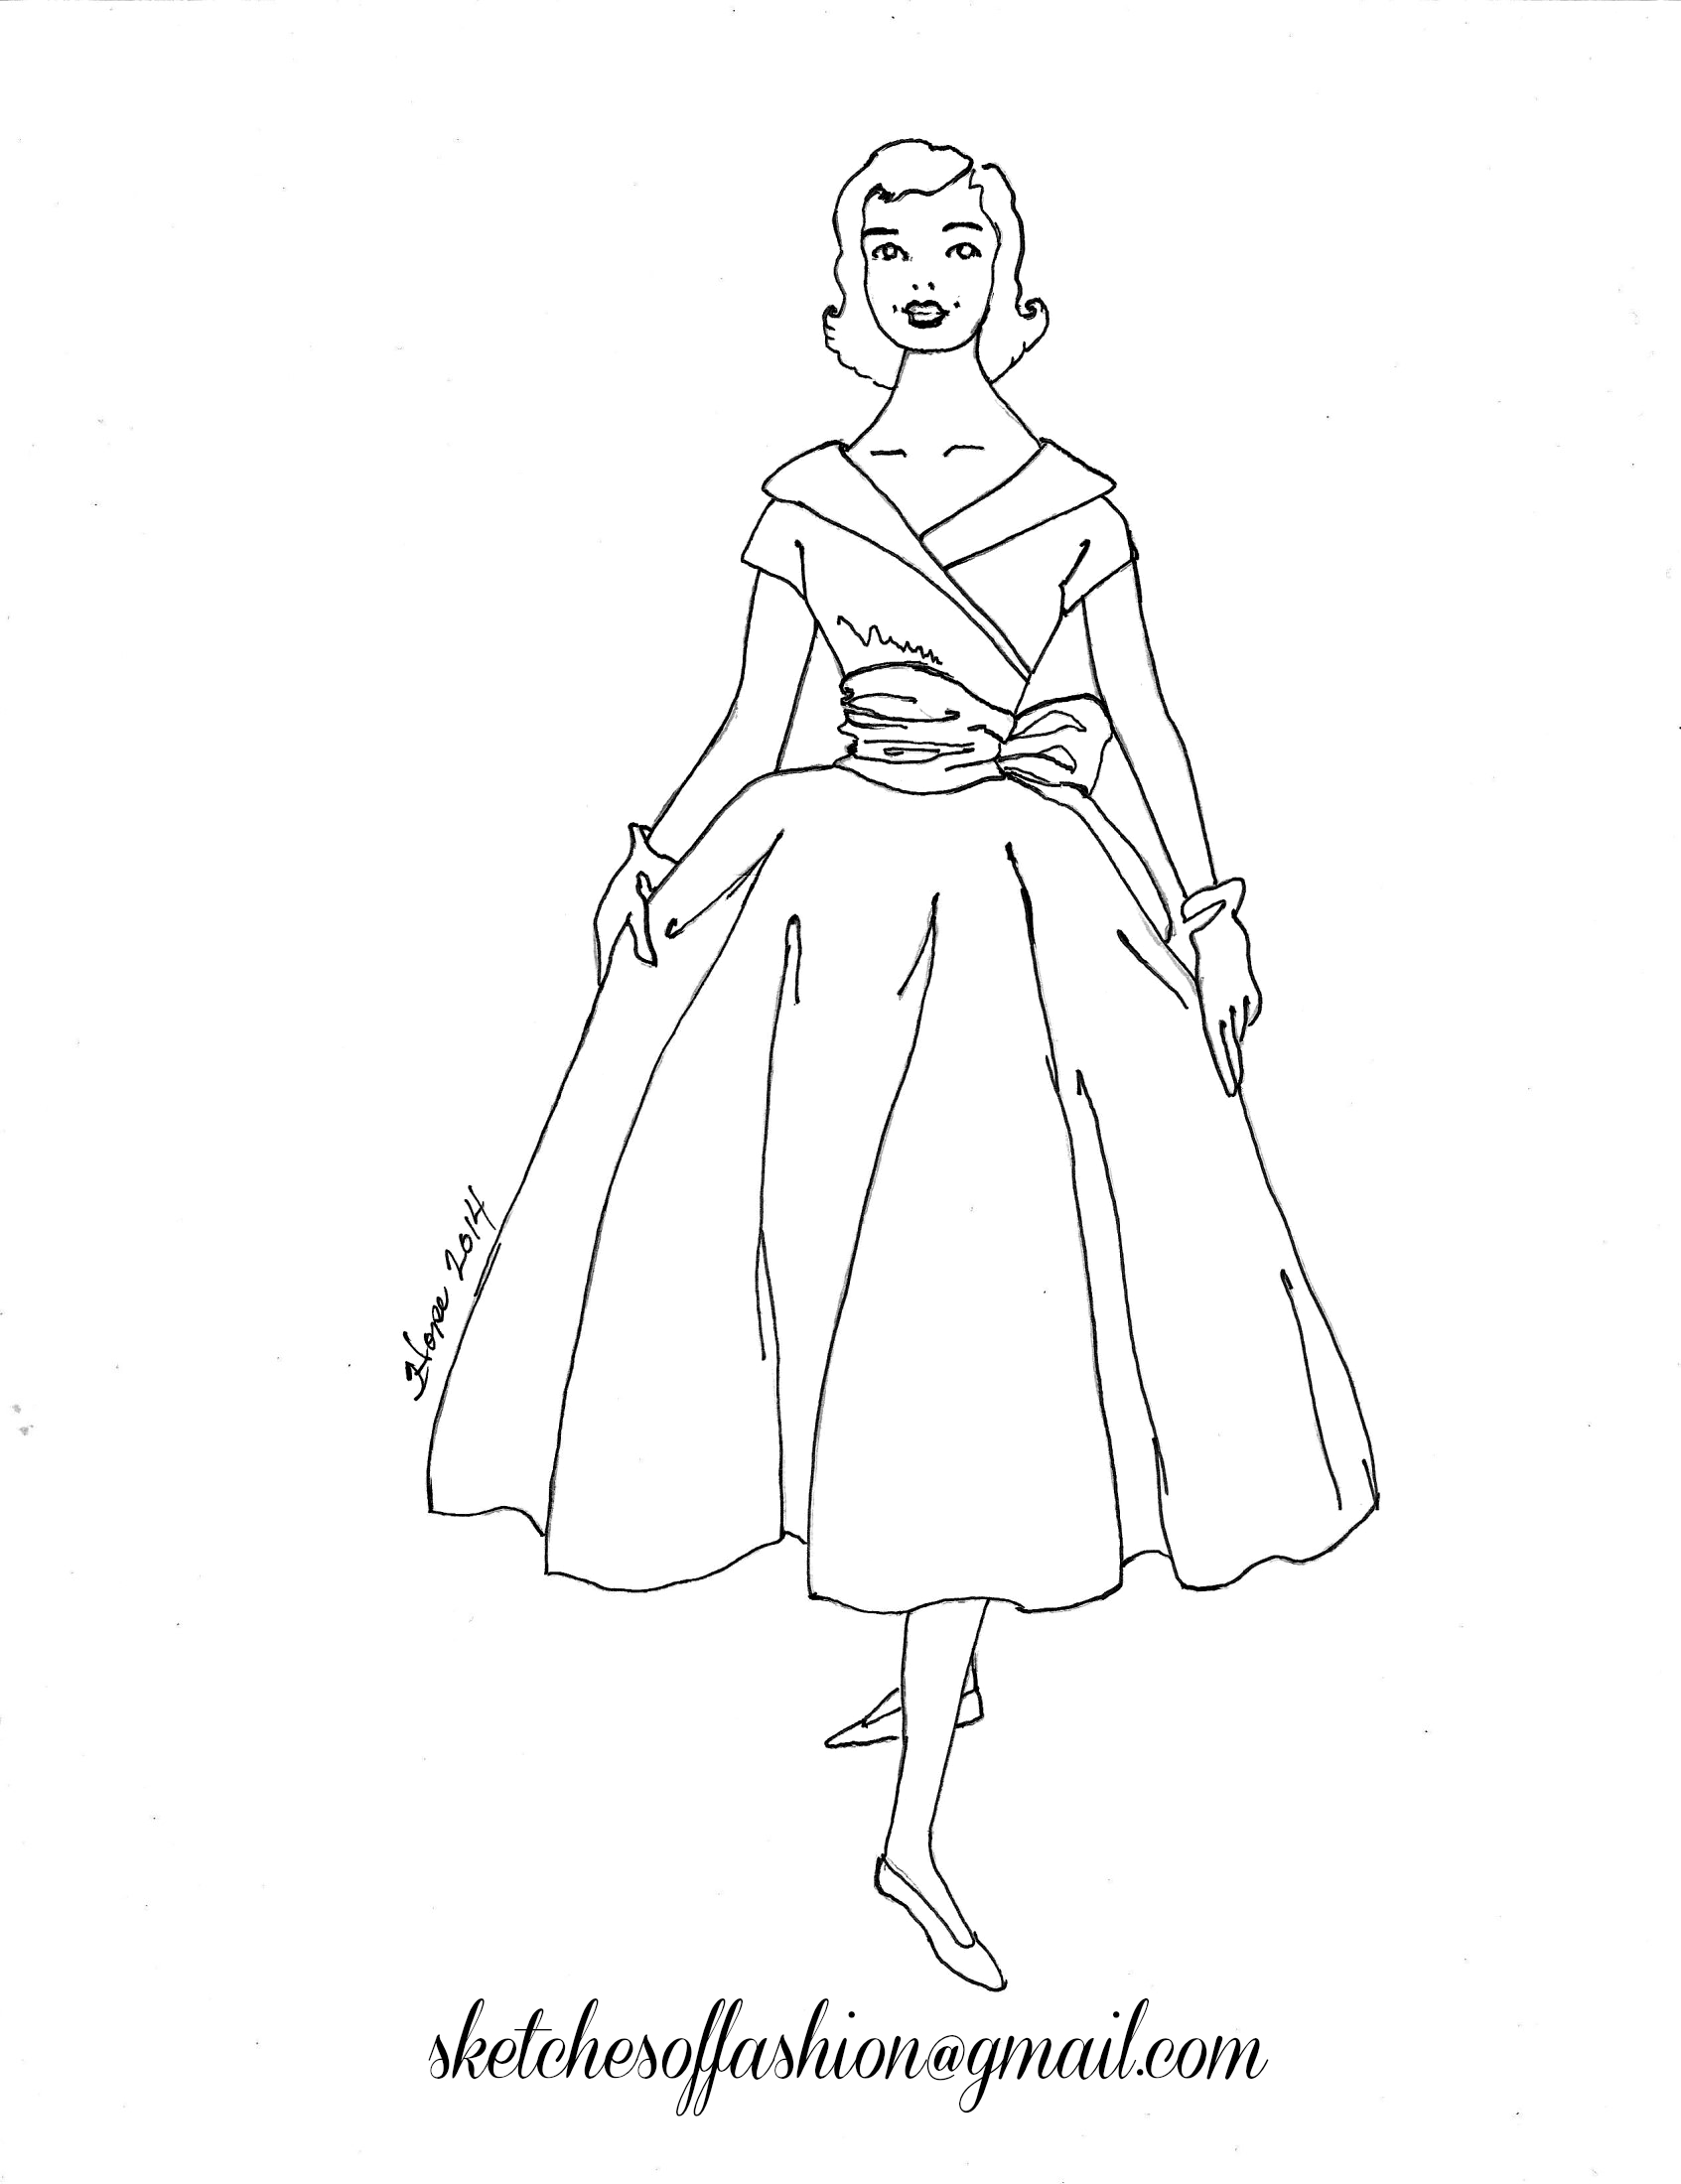 fashion design a fashion sketch colouring pagesfashion design coloring pages - Fashion Coloring Pages